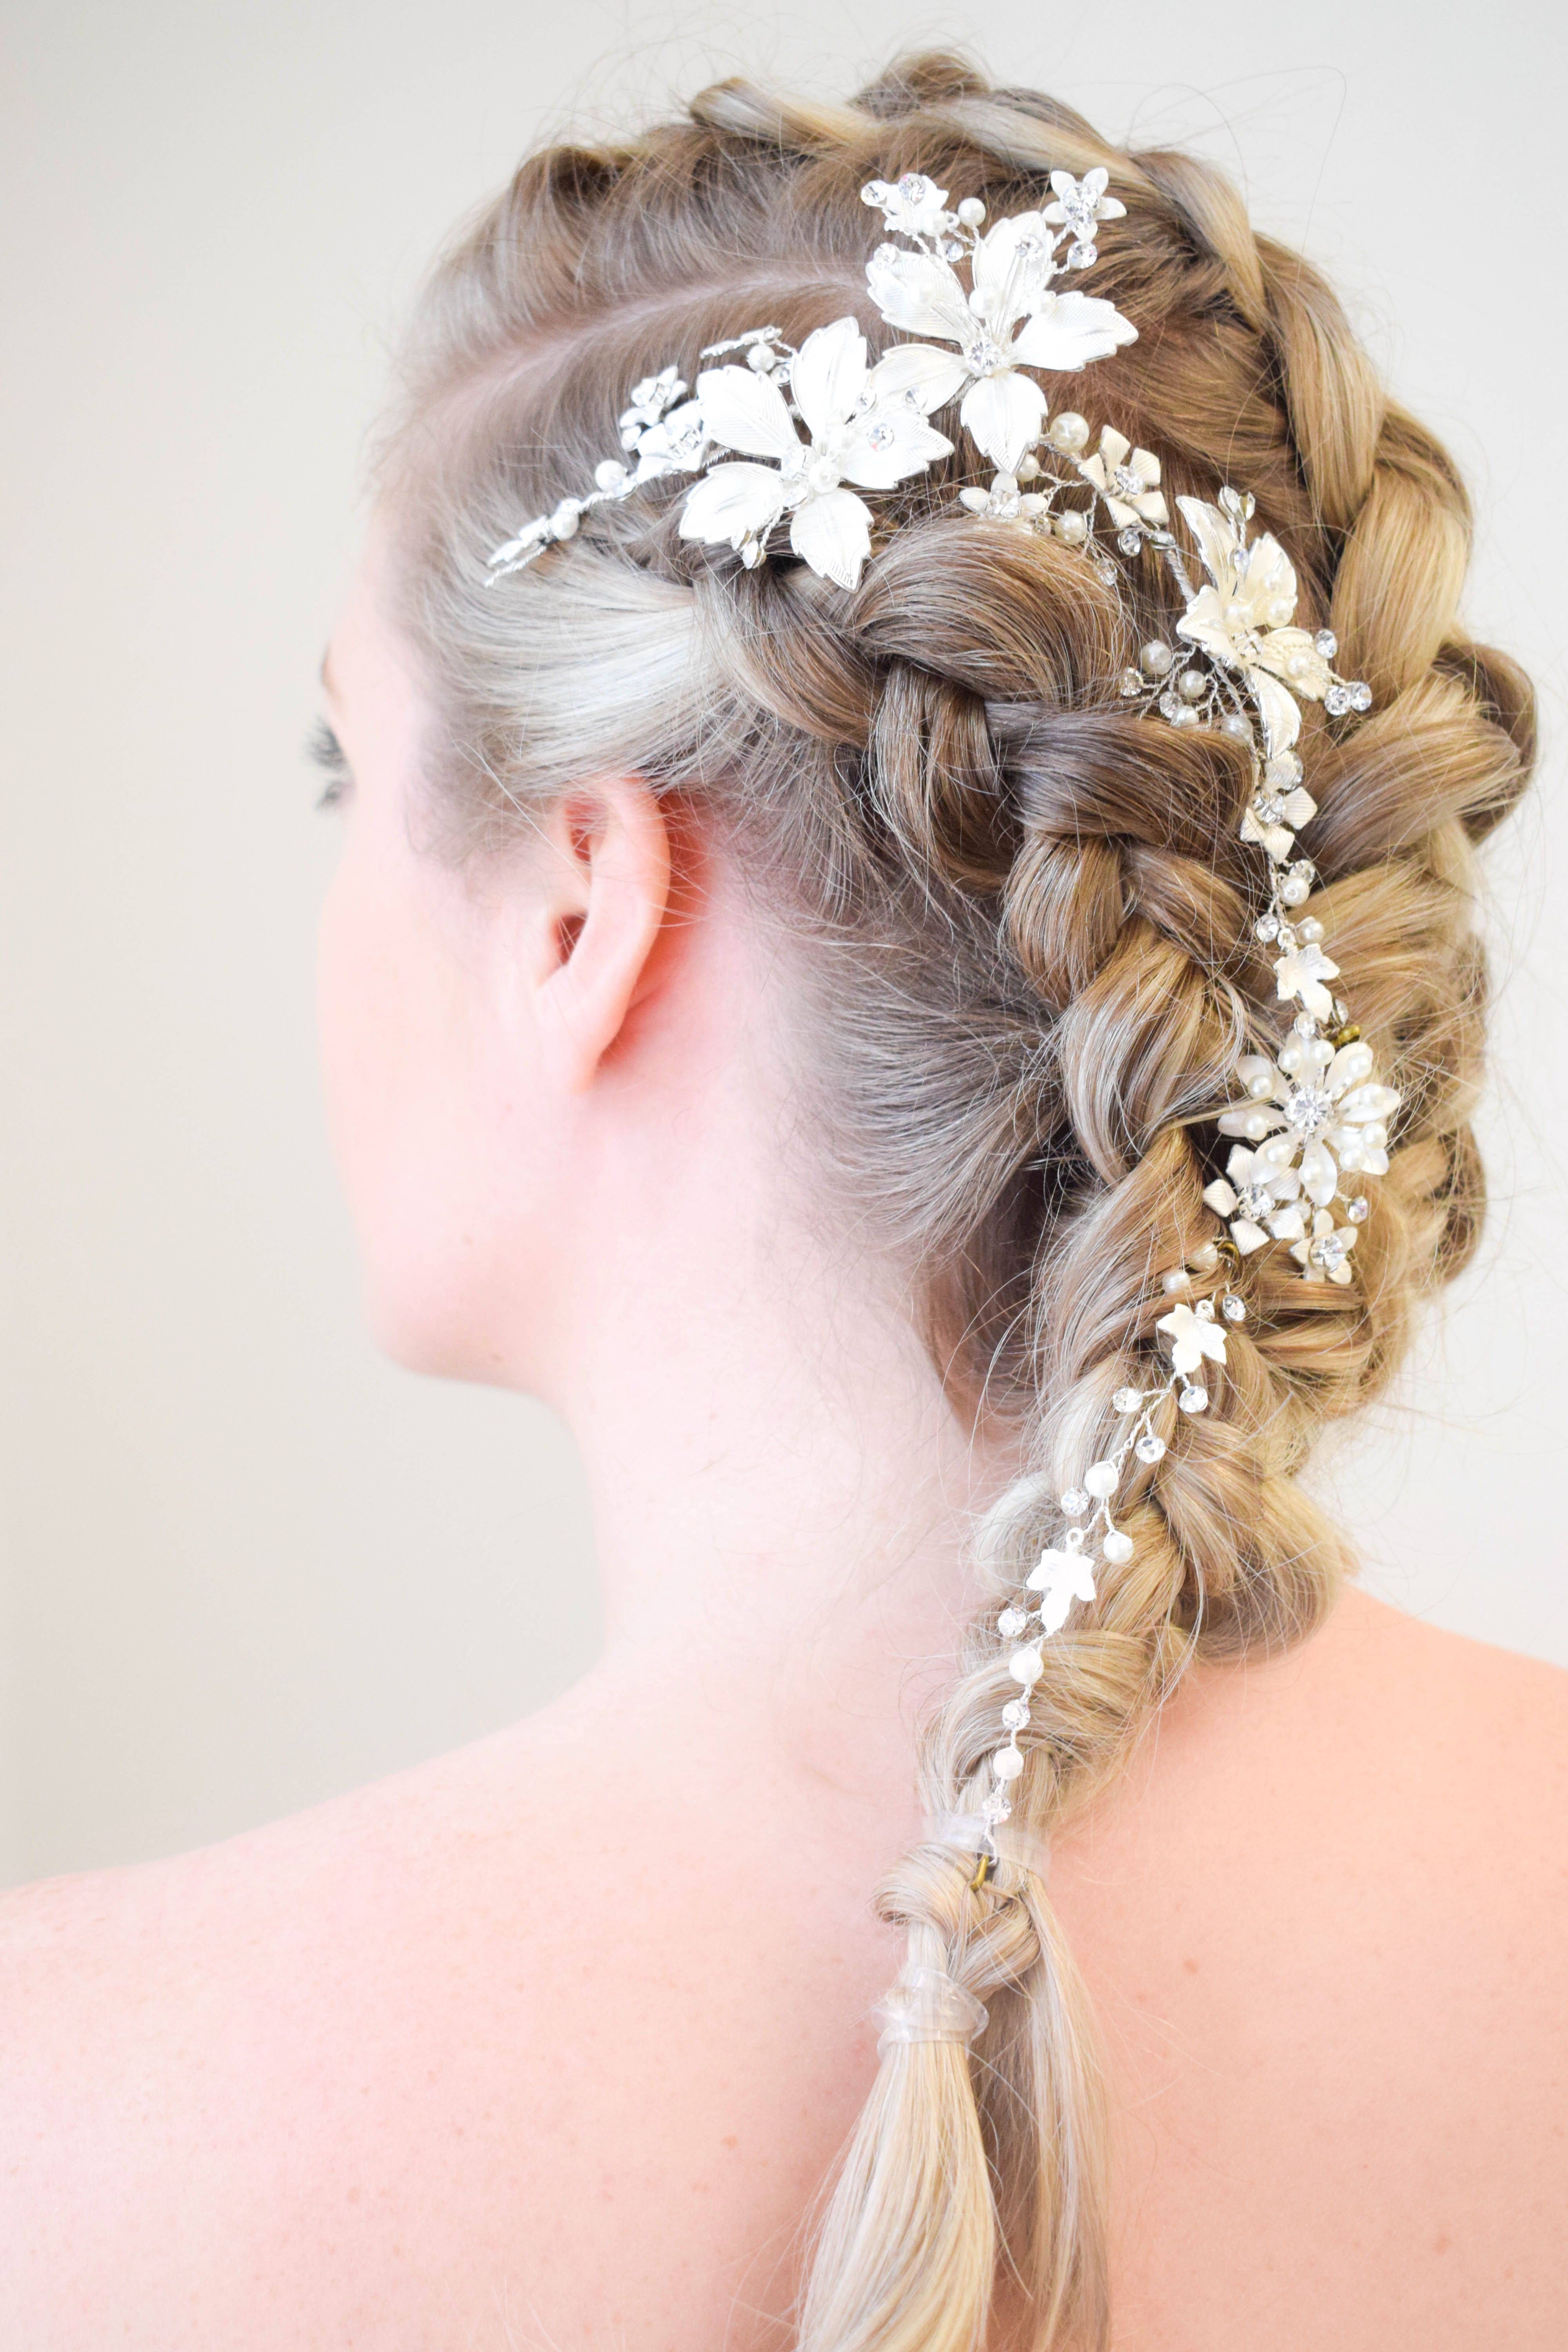 Amazing detailed prom braid   Prom outfits, Prom designs ...